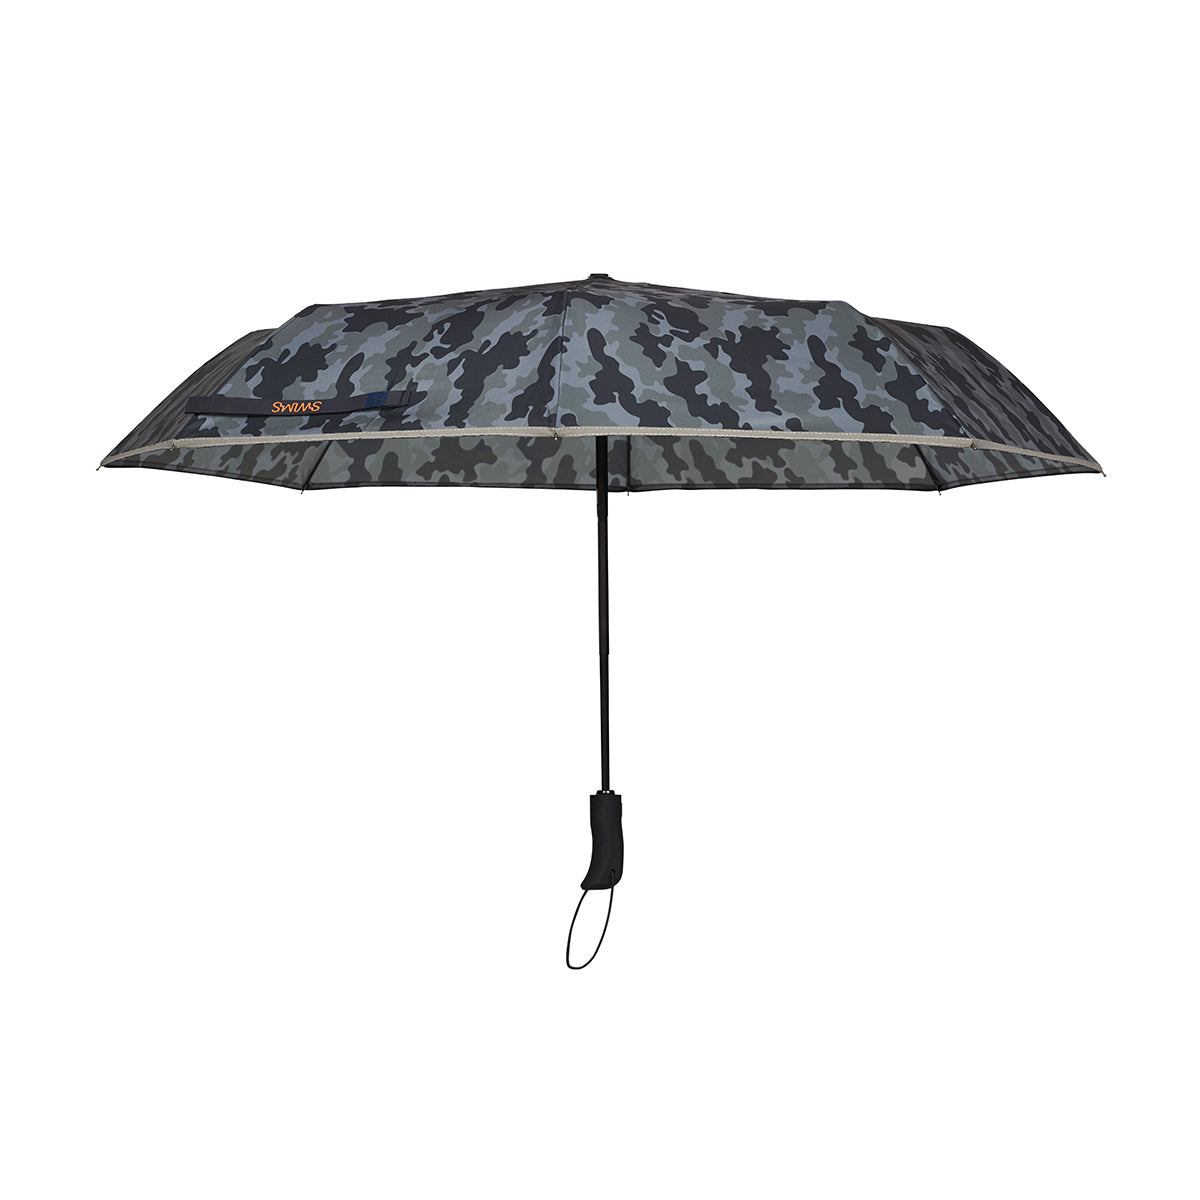 Umbrella Short - background::white,variant::Night Camo/Black